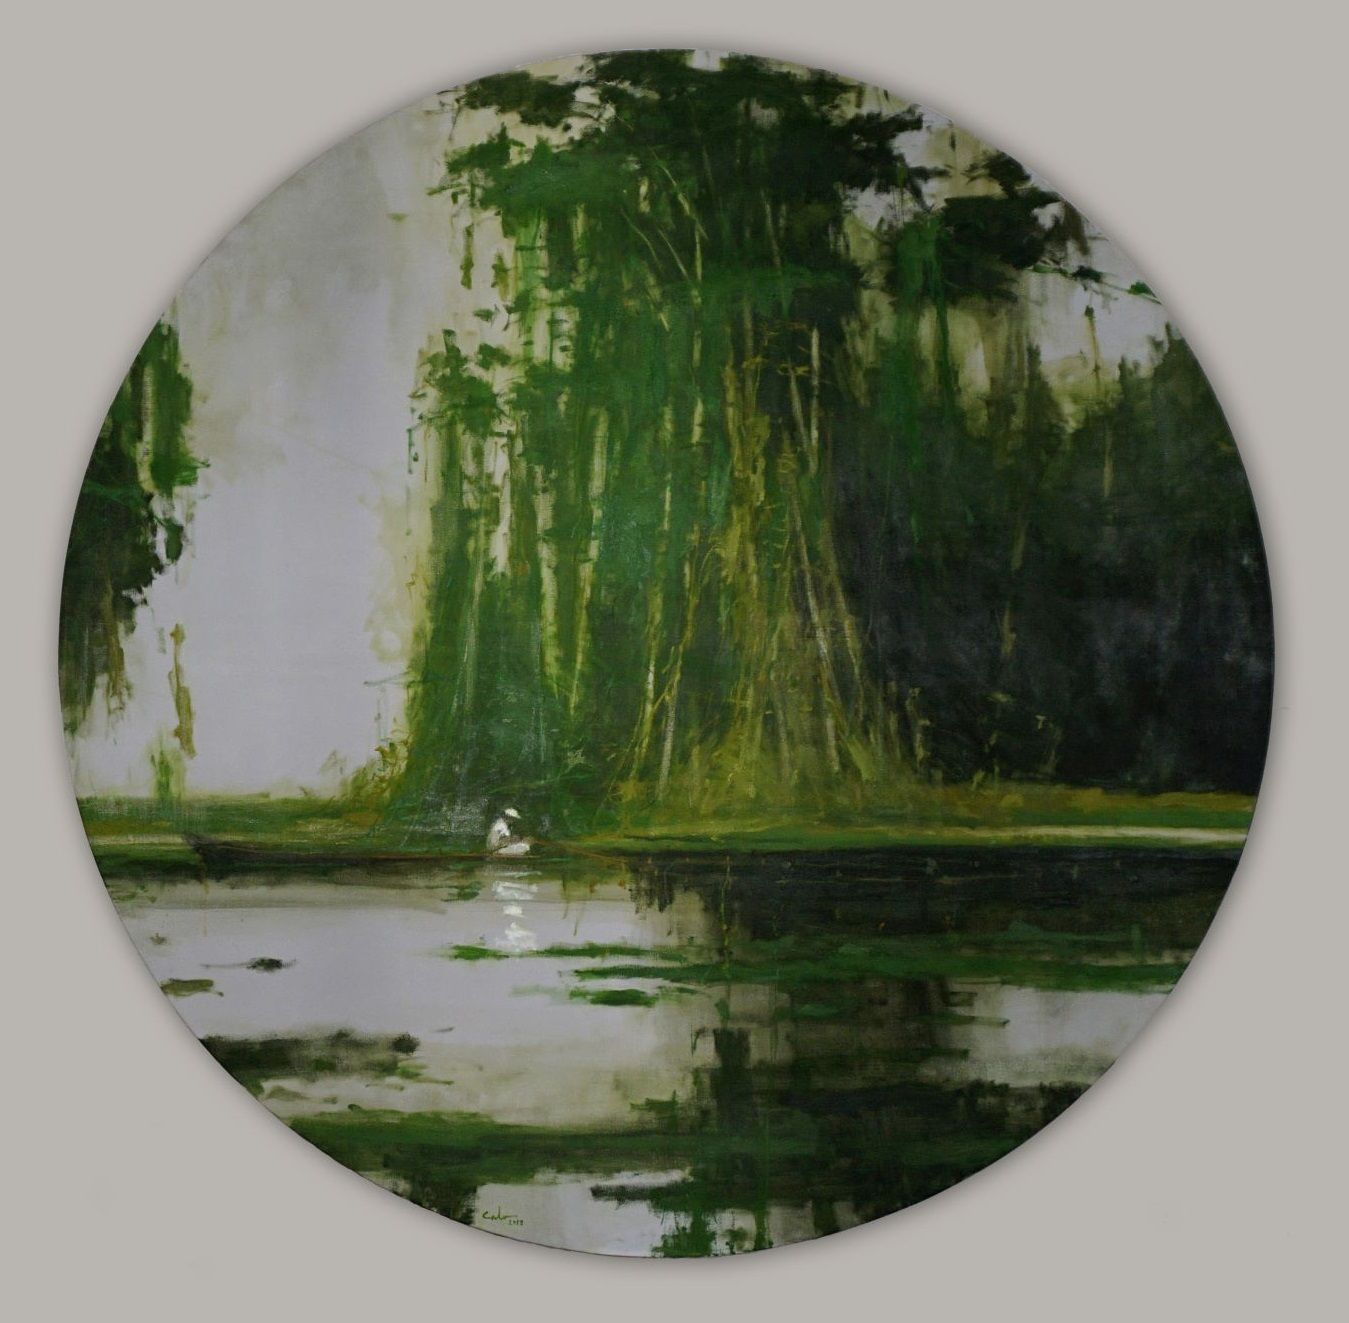 Fishermen on river Nanay 2 - Calo  Carratalá - Contemporary painting